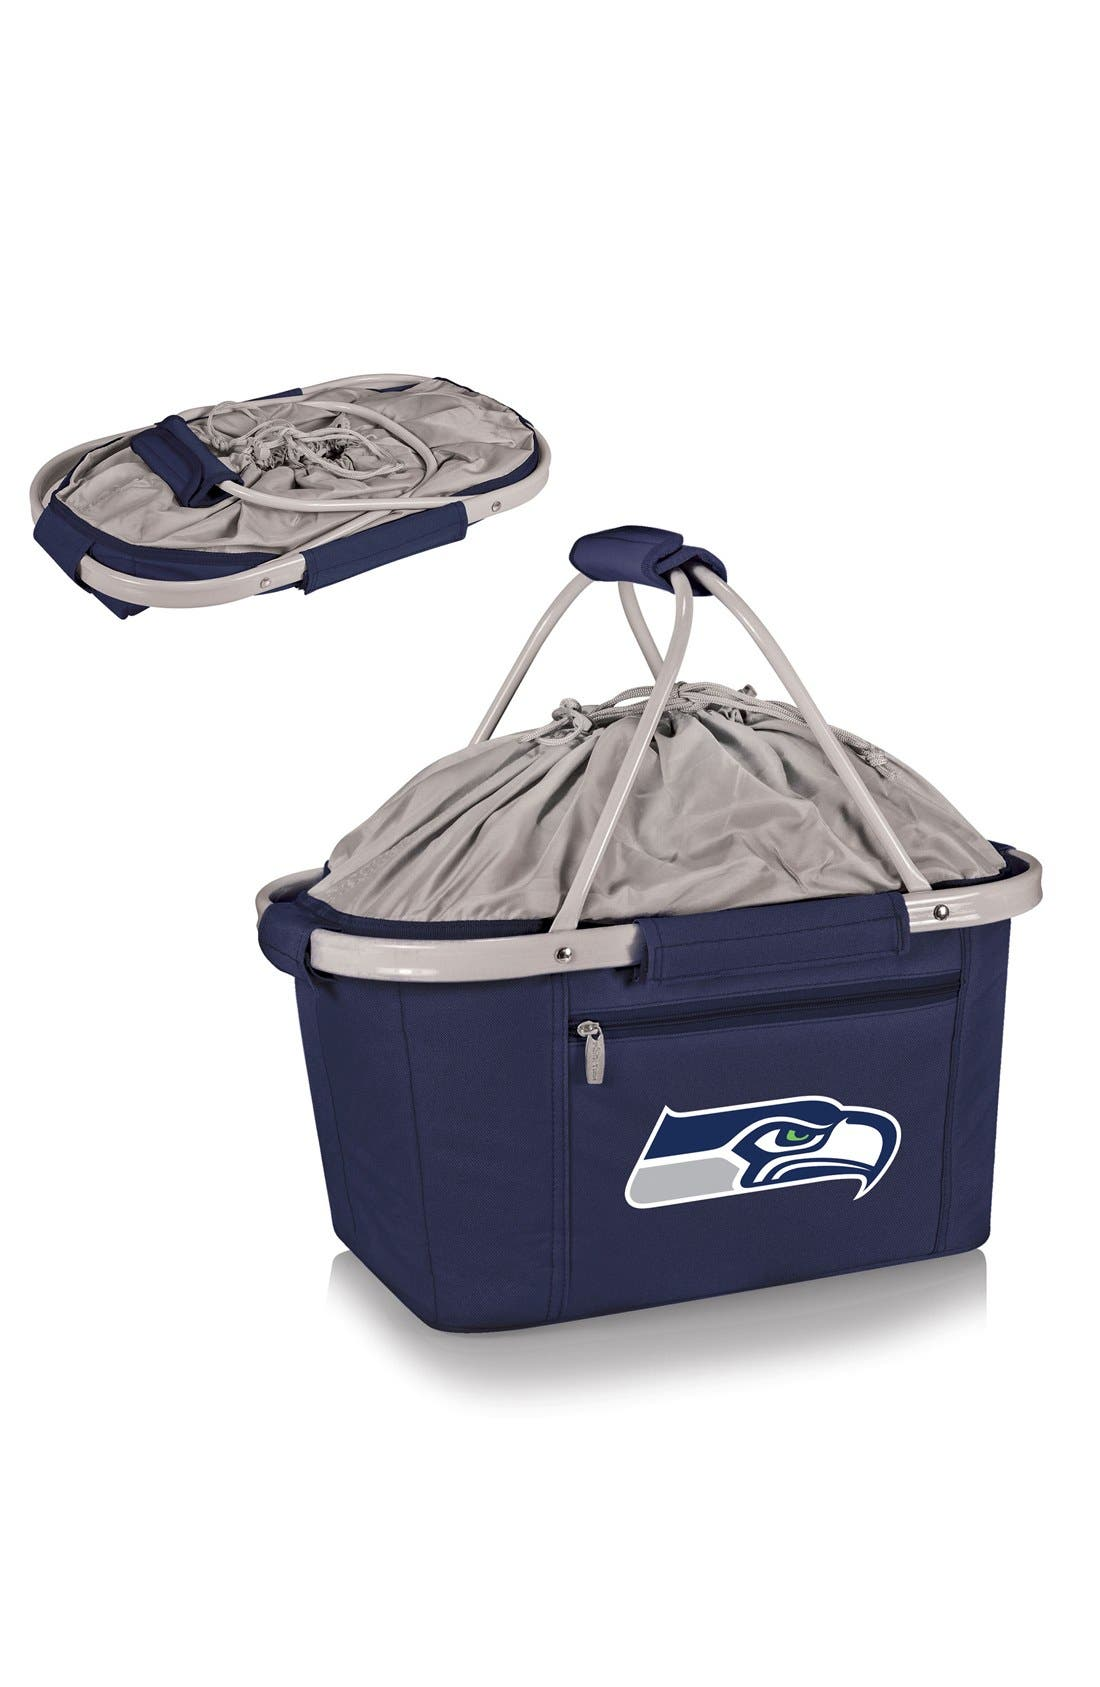 PICNIC TIME,                             Metro NFL Collapsible Insulated Basket,                             Alternate thumbnail 2, color,                             409